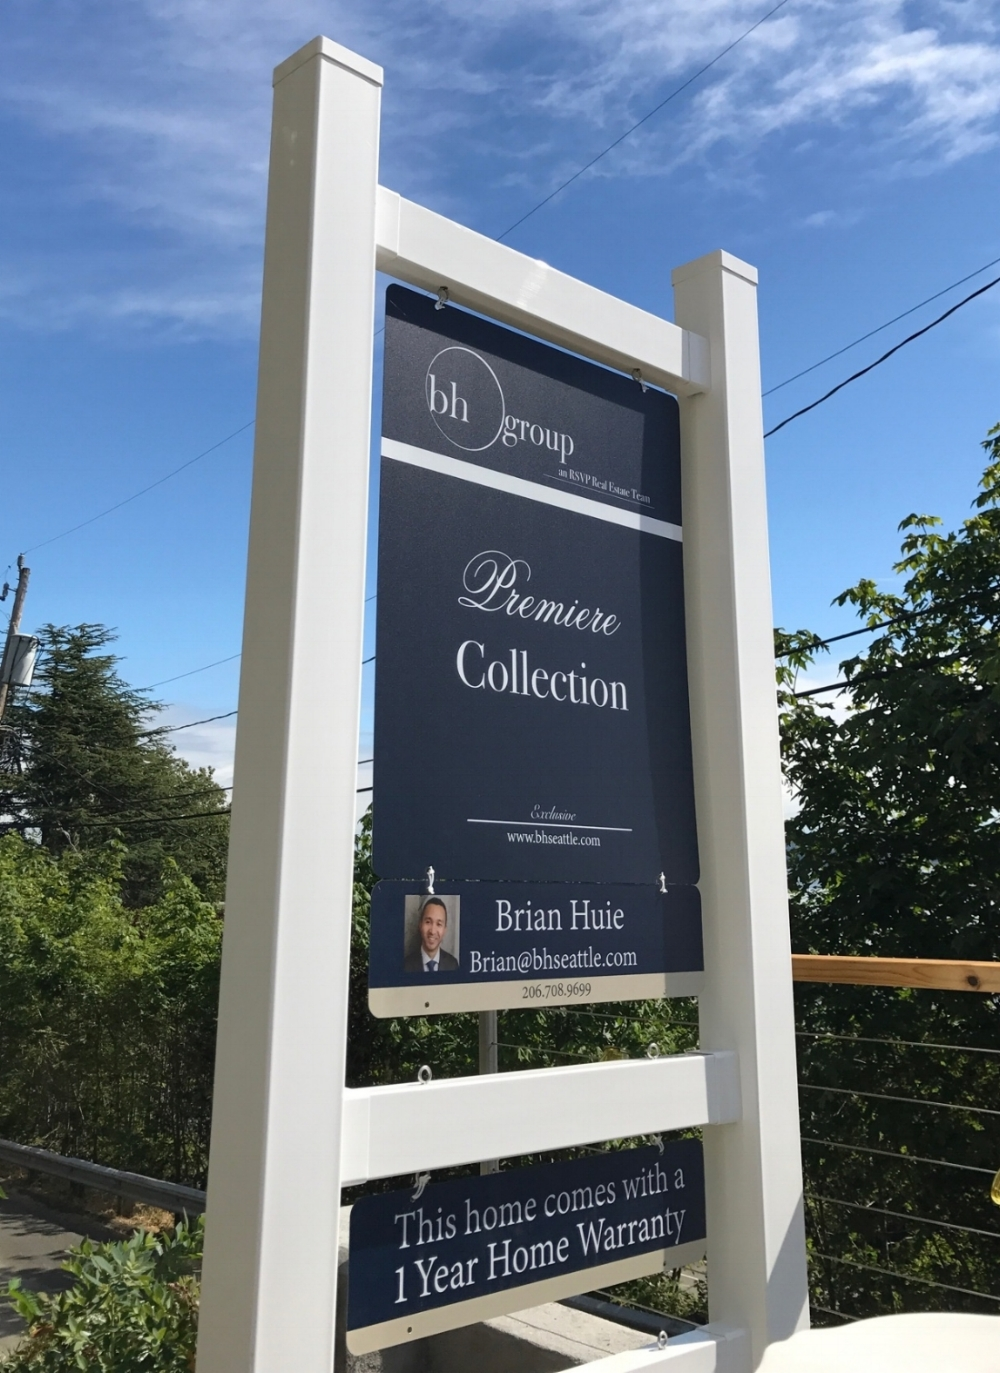 Detailed Yard Signage - Attractive, attention commanding, and to the point.  All of our signage mounts on posts and frames which hold other detailed information such as flyers, direction signs, balloons, and weatherproof specification sheets.